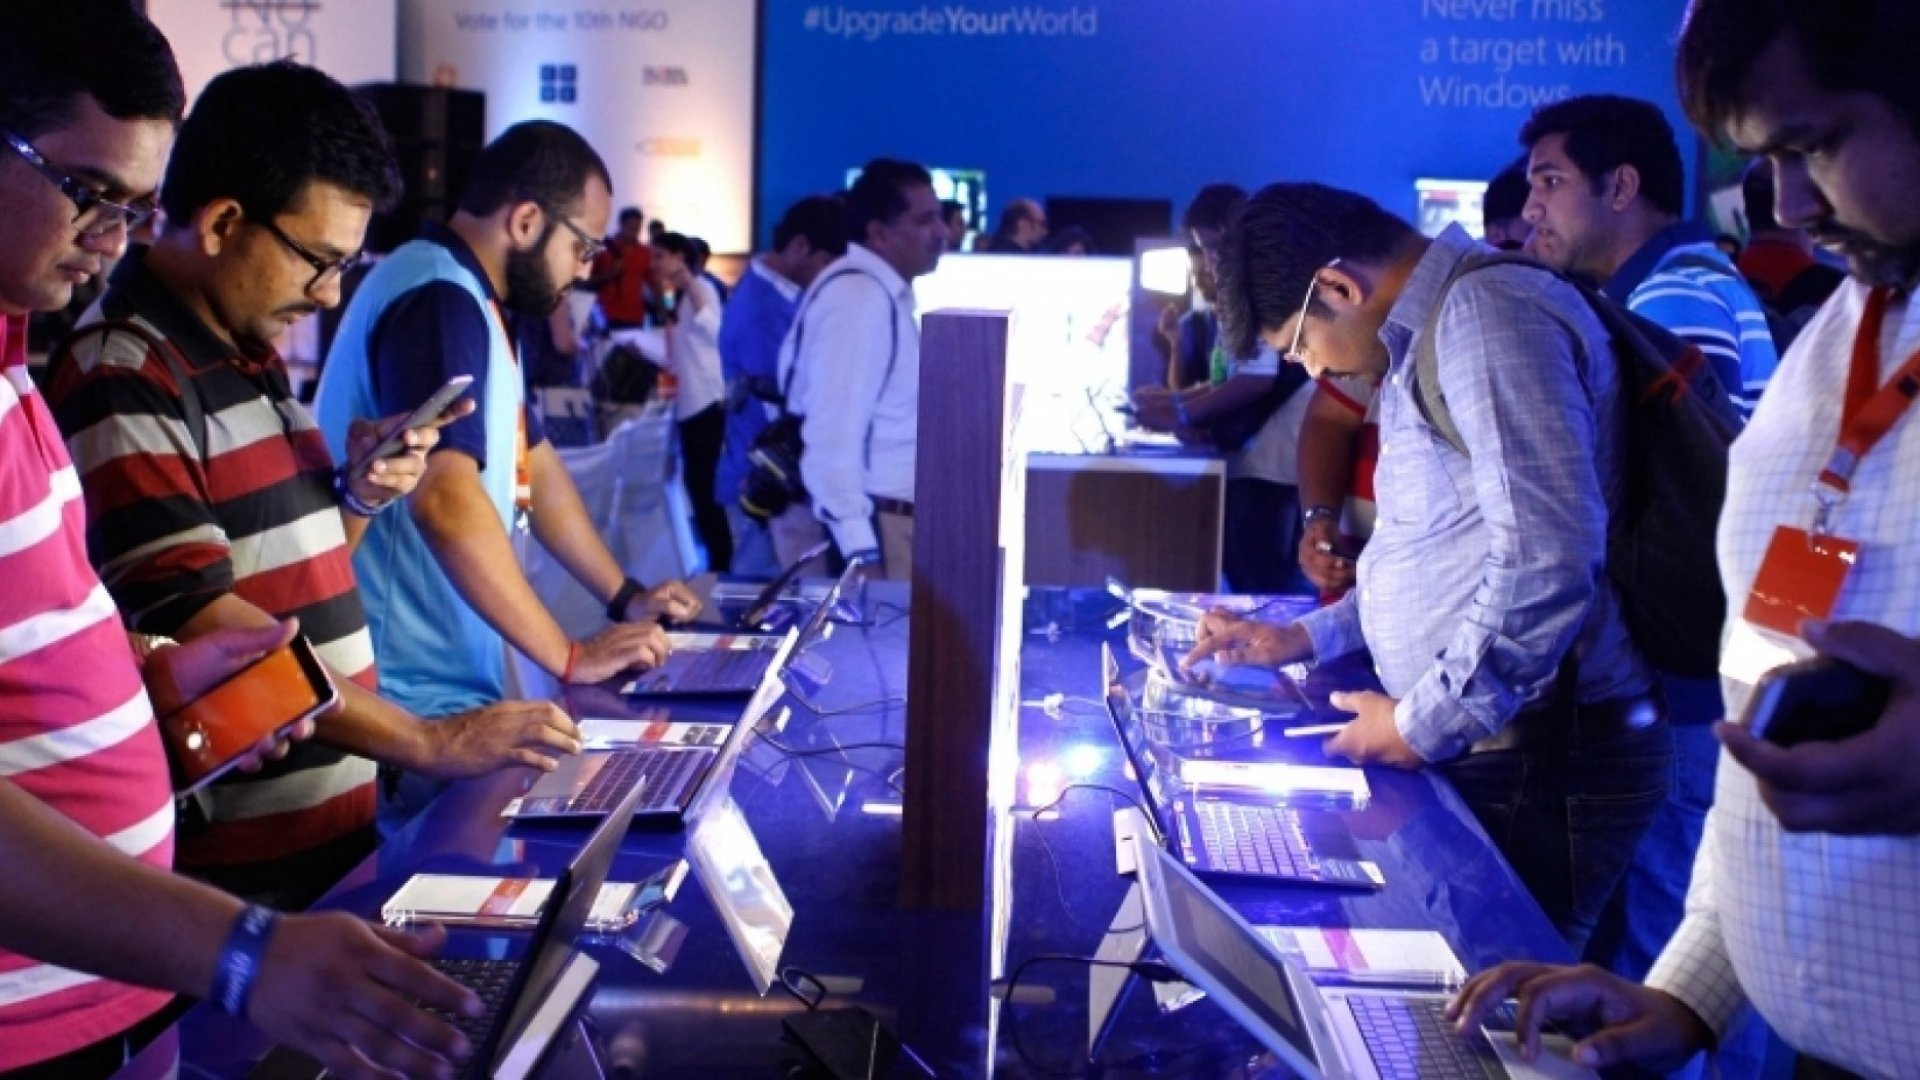 10 Things to Know About Microsoft Windows 10